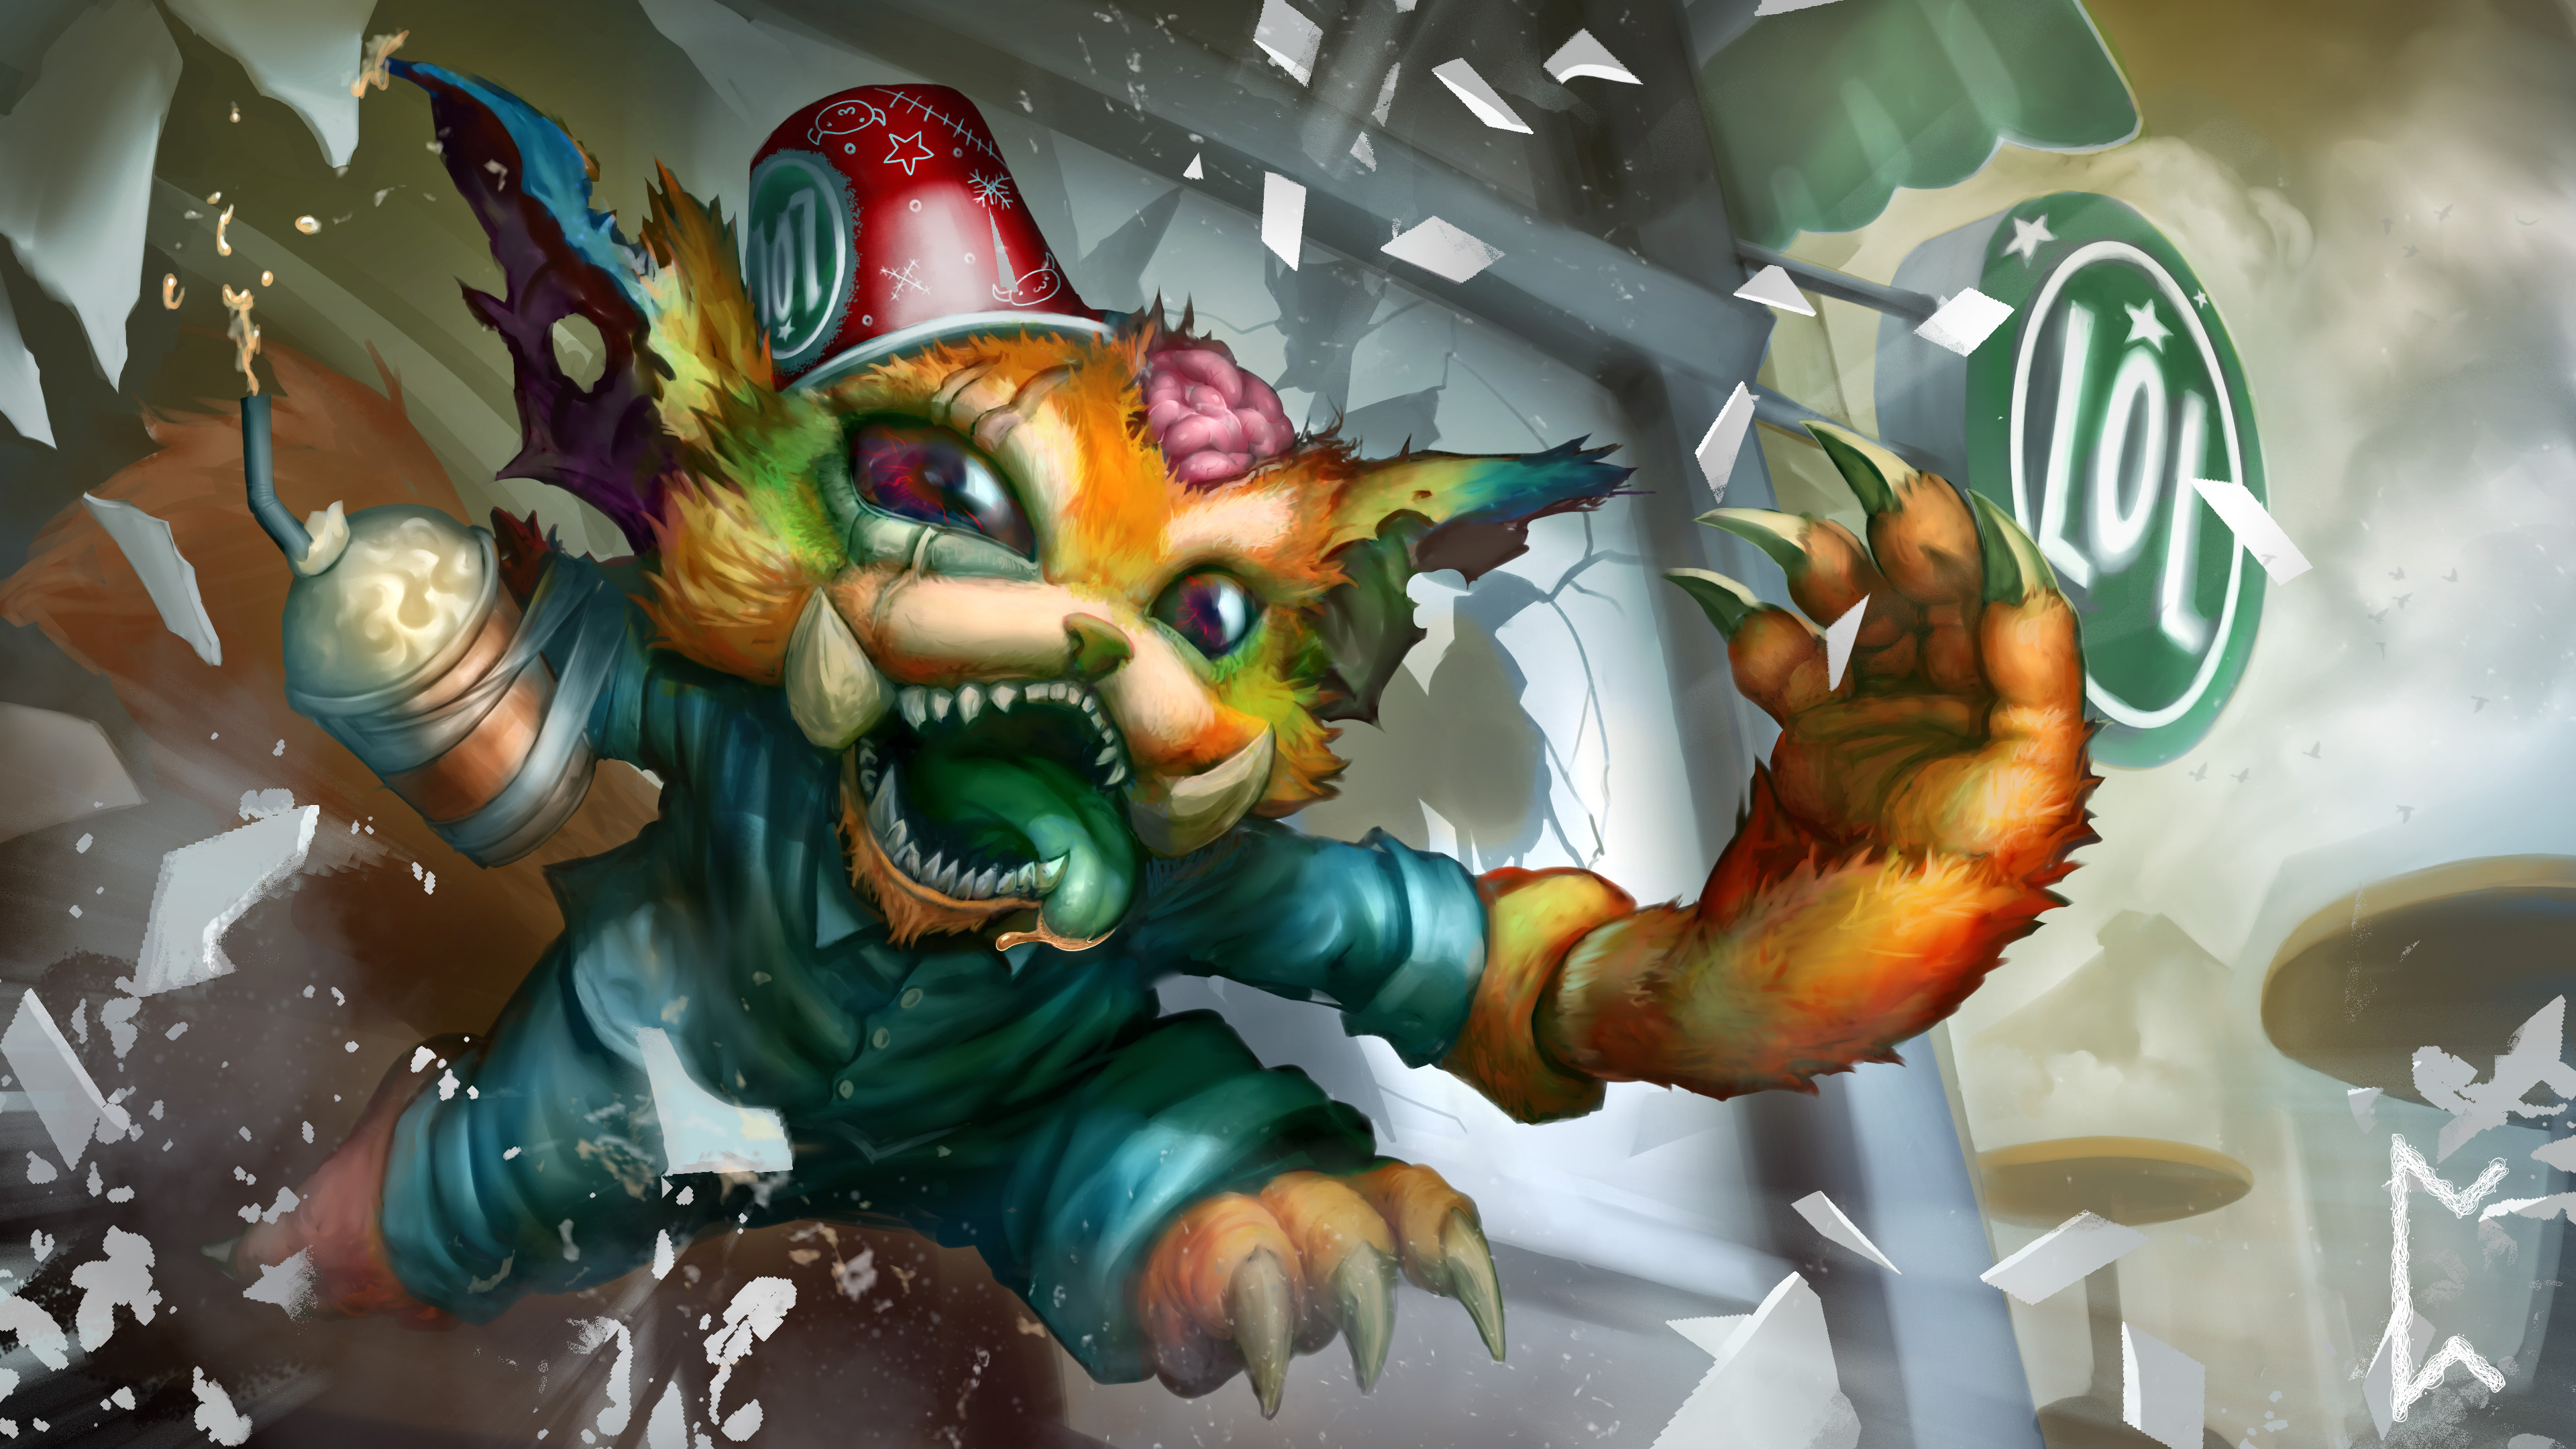 Gnar Fan Art - League of Legends Wallpapers